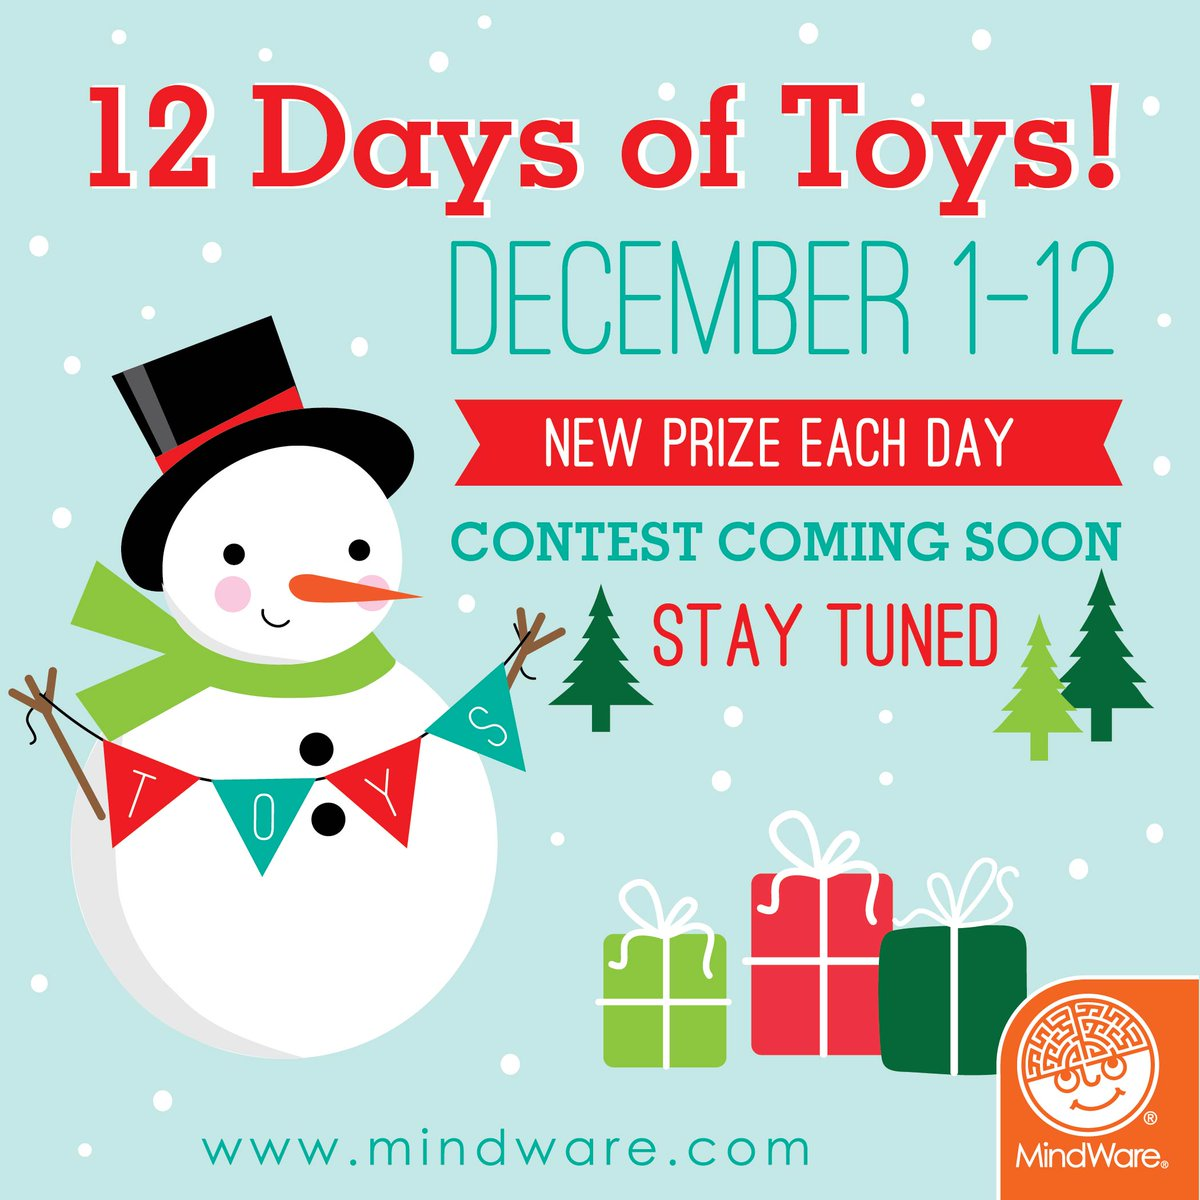 The MindWare 12 Days of Toys is near! #Contest #Giveaway #Toys #Games https://t.co/fvvRCSrRsu